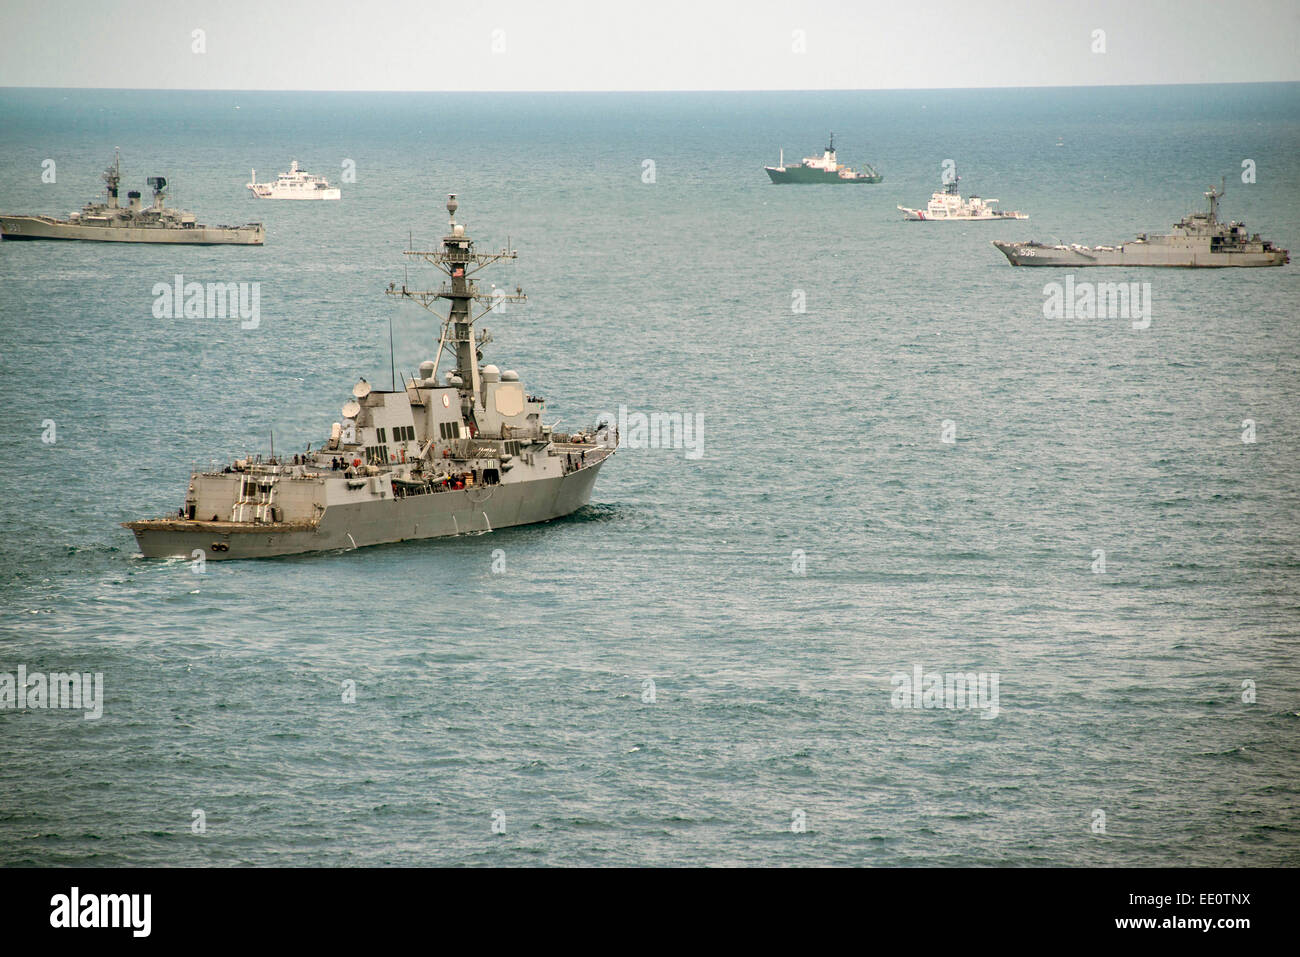 US Navy guided missile destroyer USS Sampson during search efforts to locate AirAsia Flight 8501 black box along - Stock Image